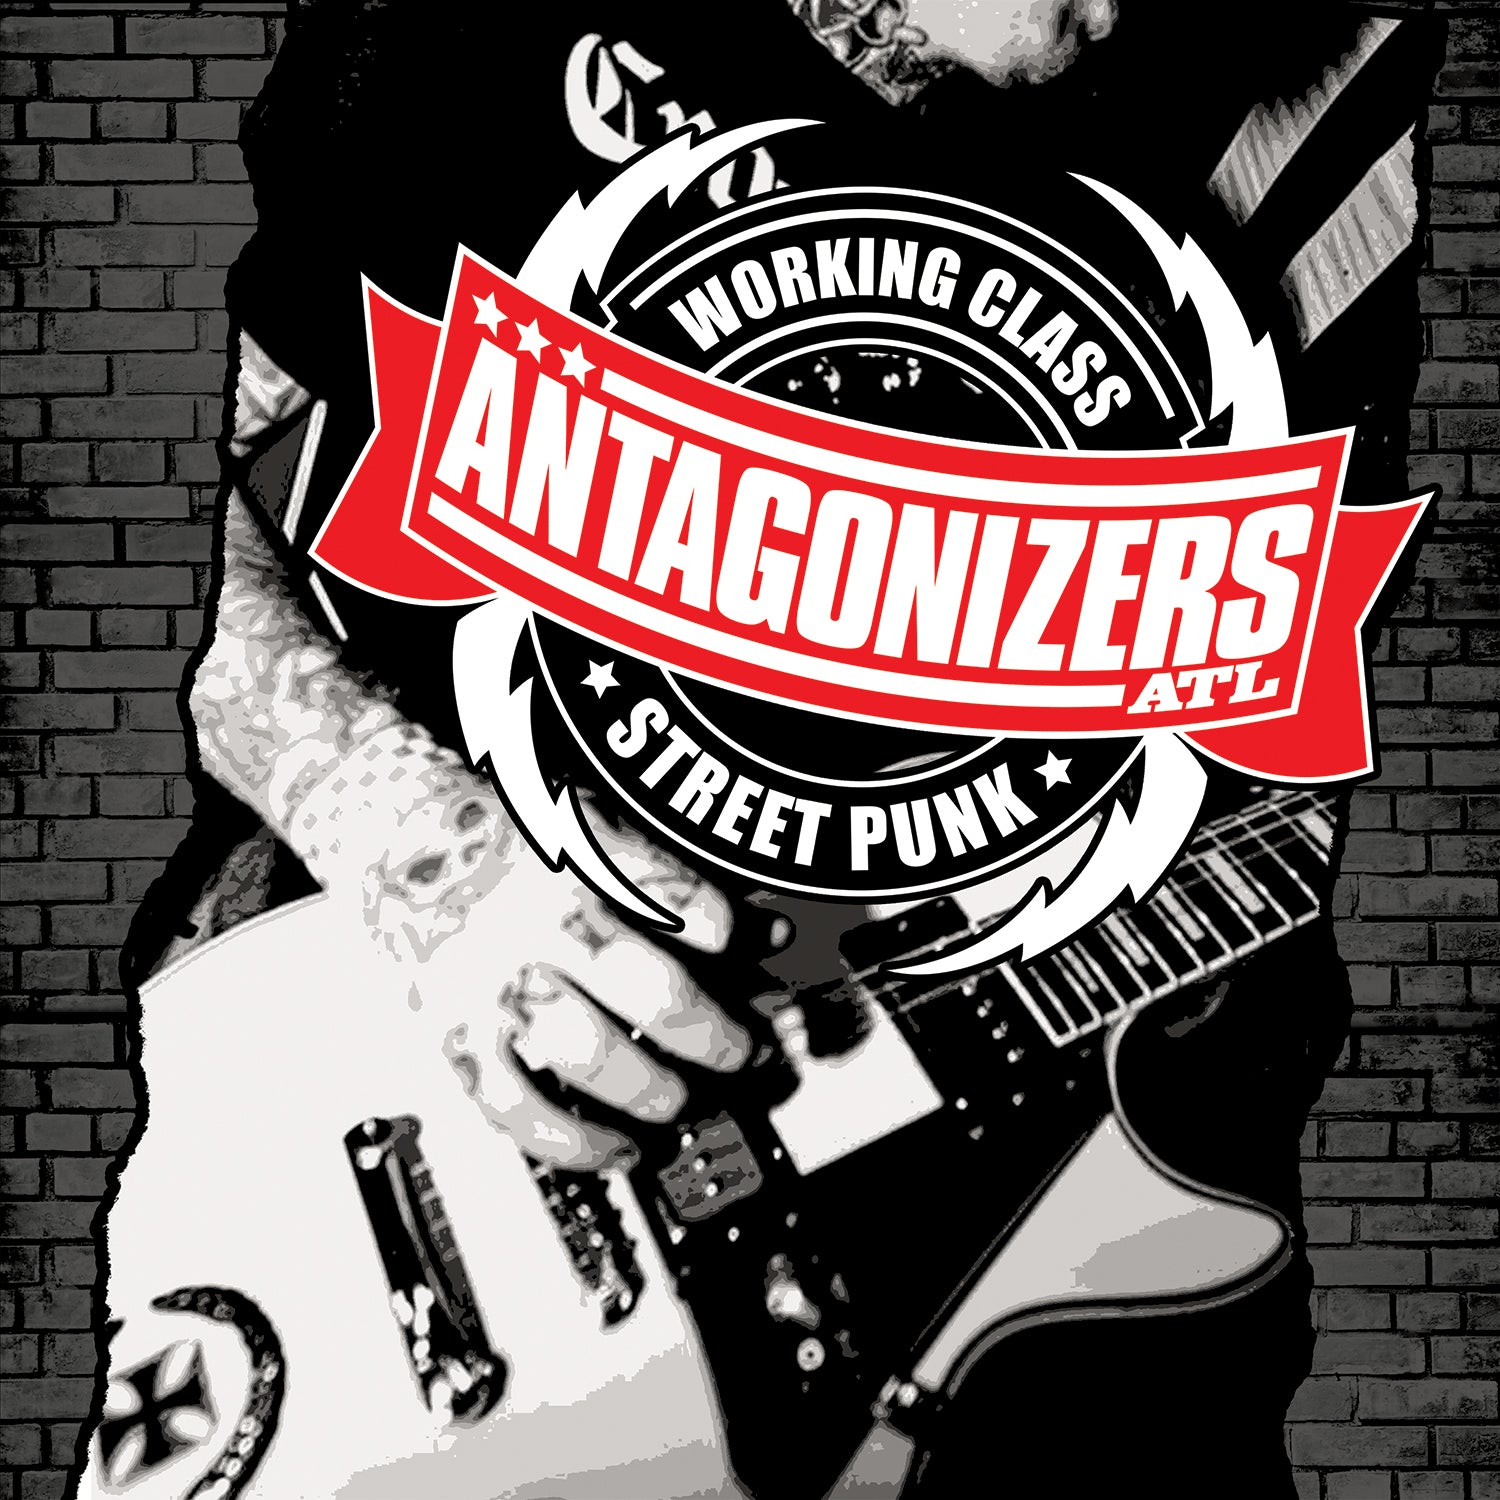 Antagonizers ATL - Working Class Street Punk LP